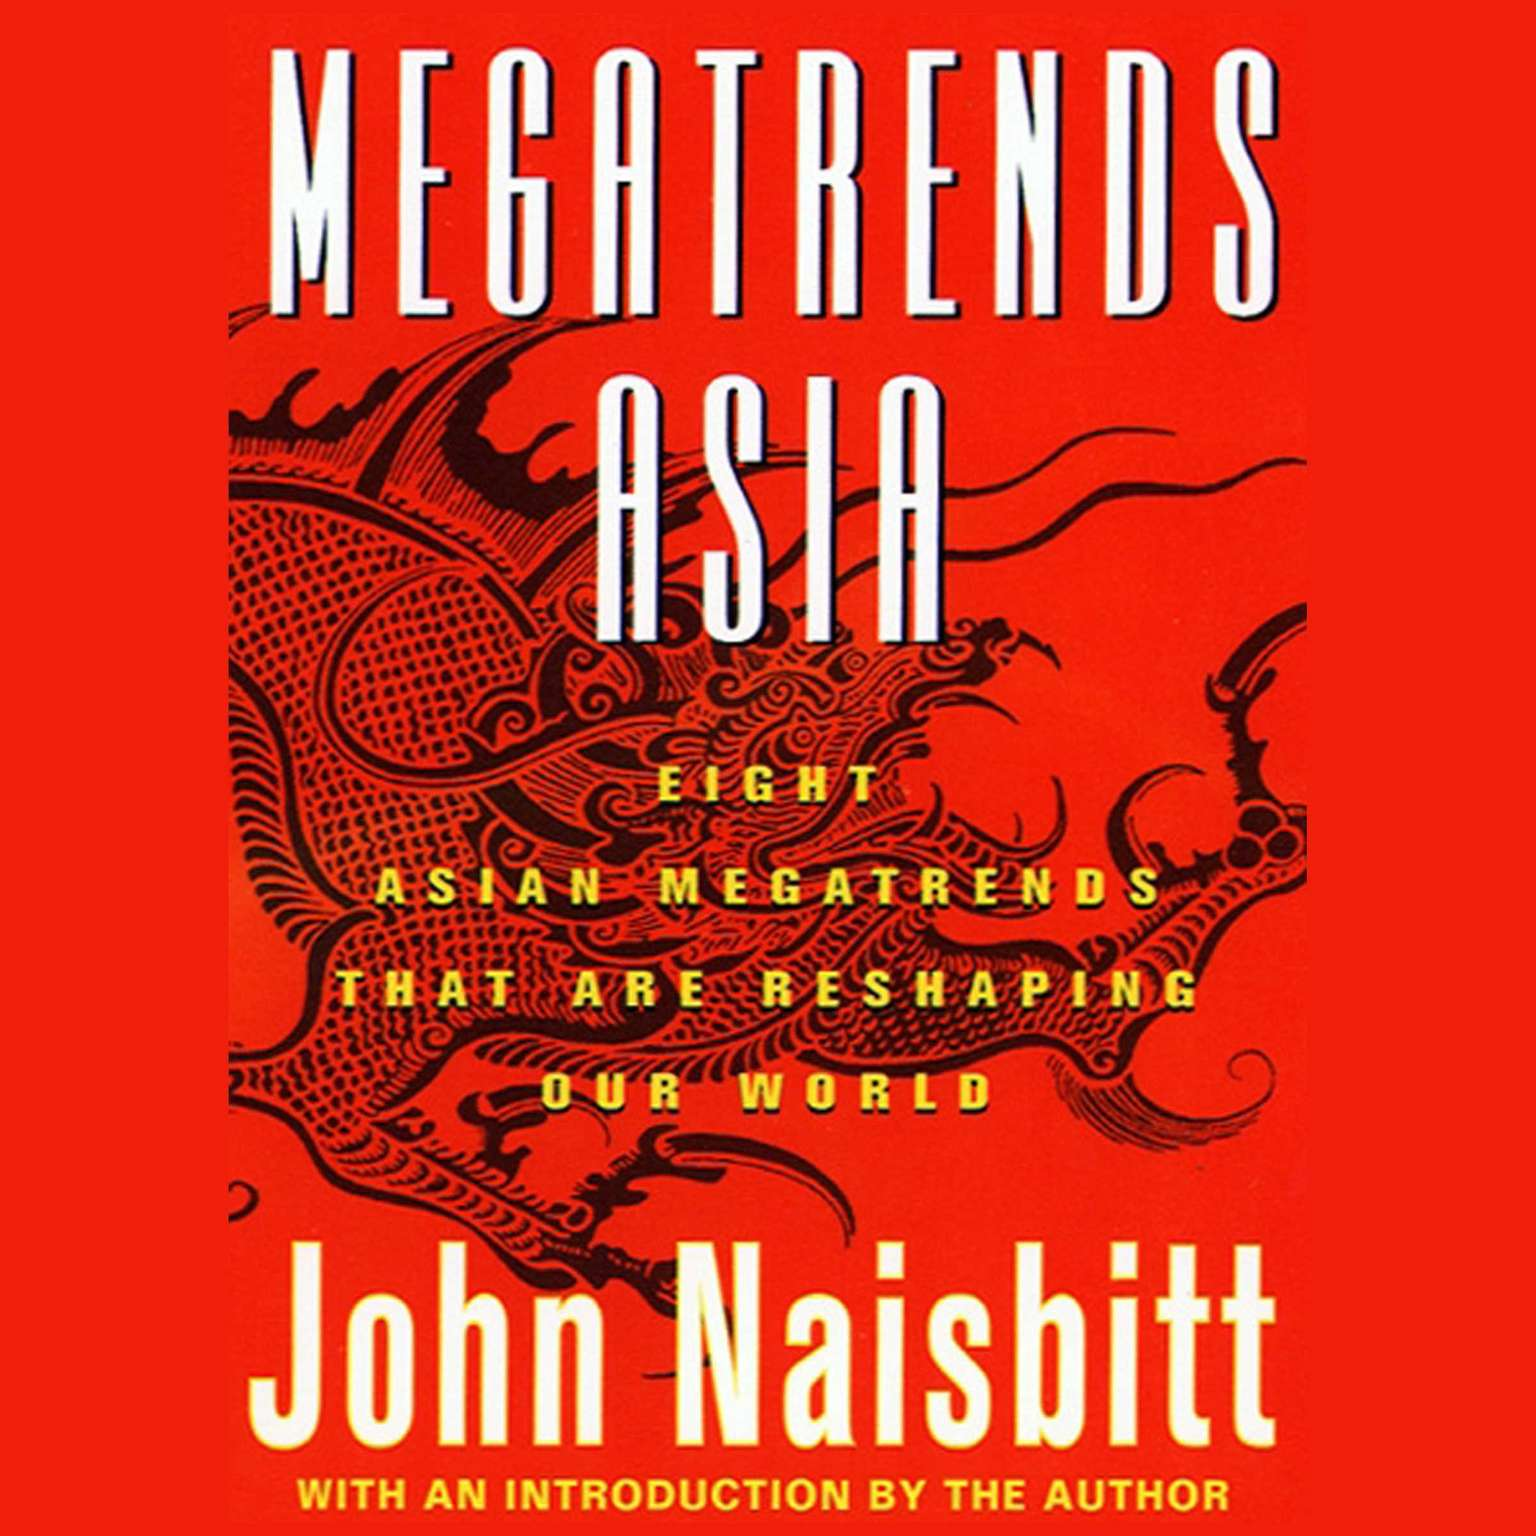 Printable Megatrends Asia: Eight Asian Megatrends That Are Reshaping Our World Audiobook Cover Art